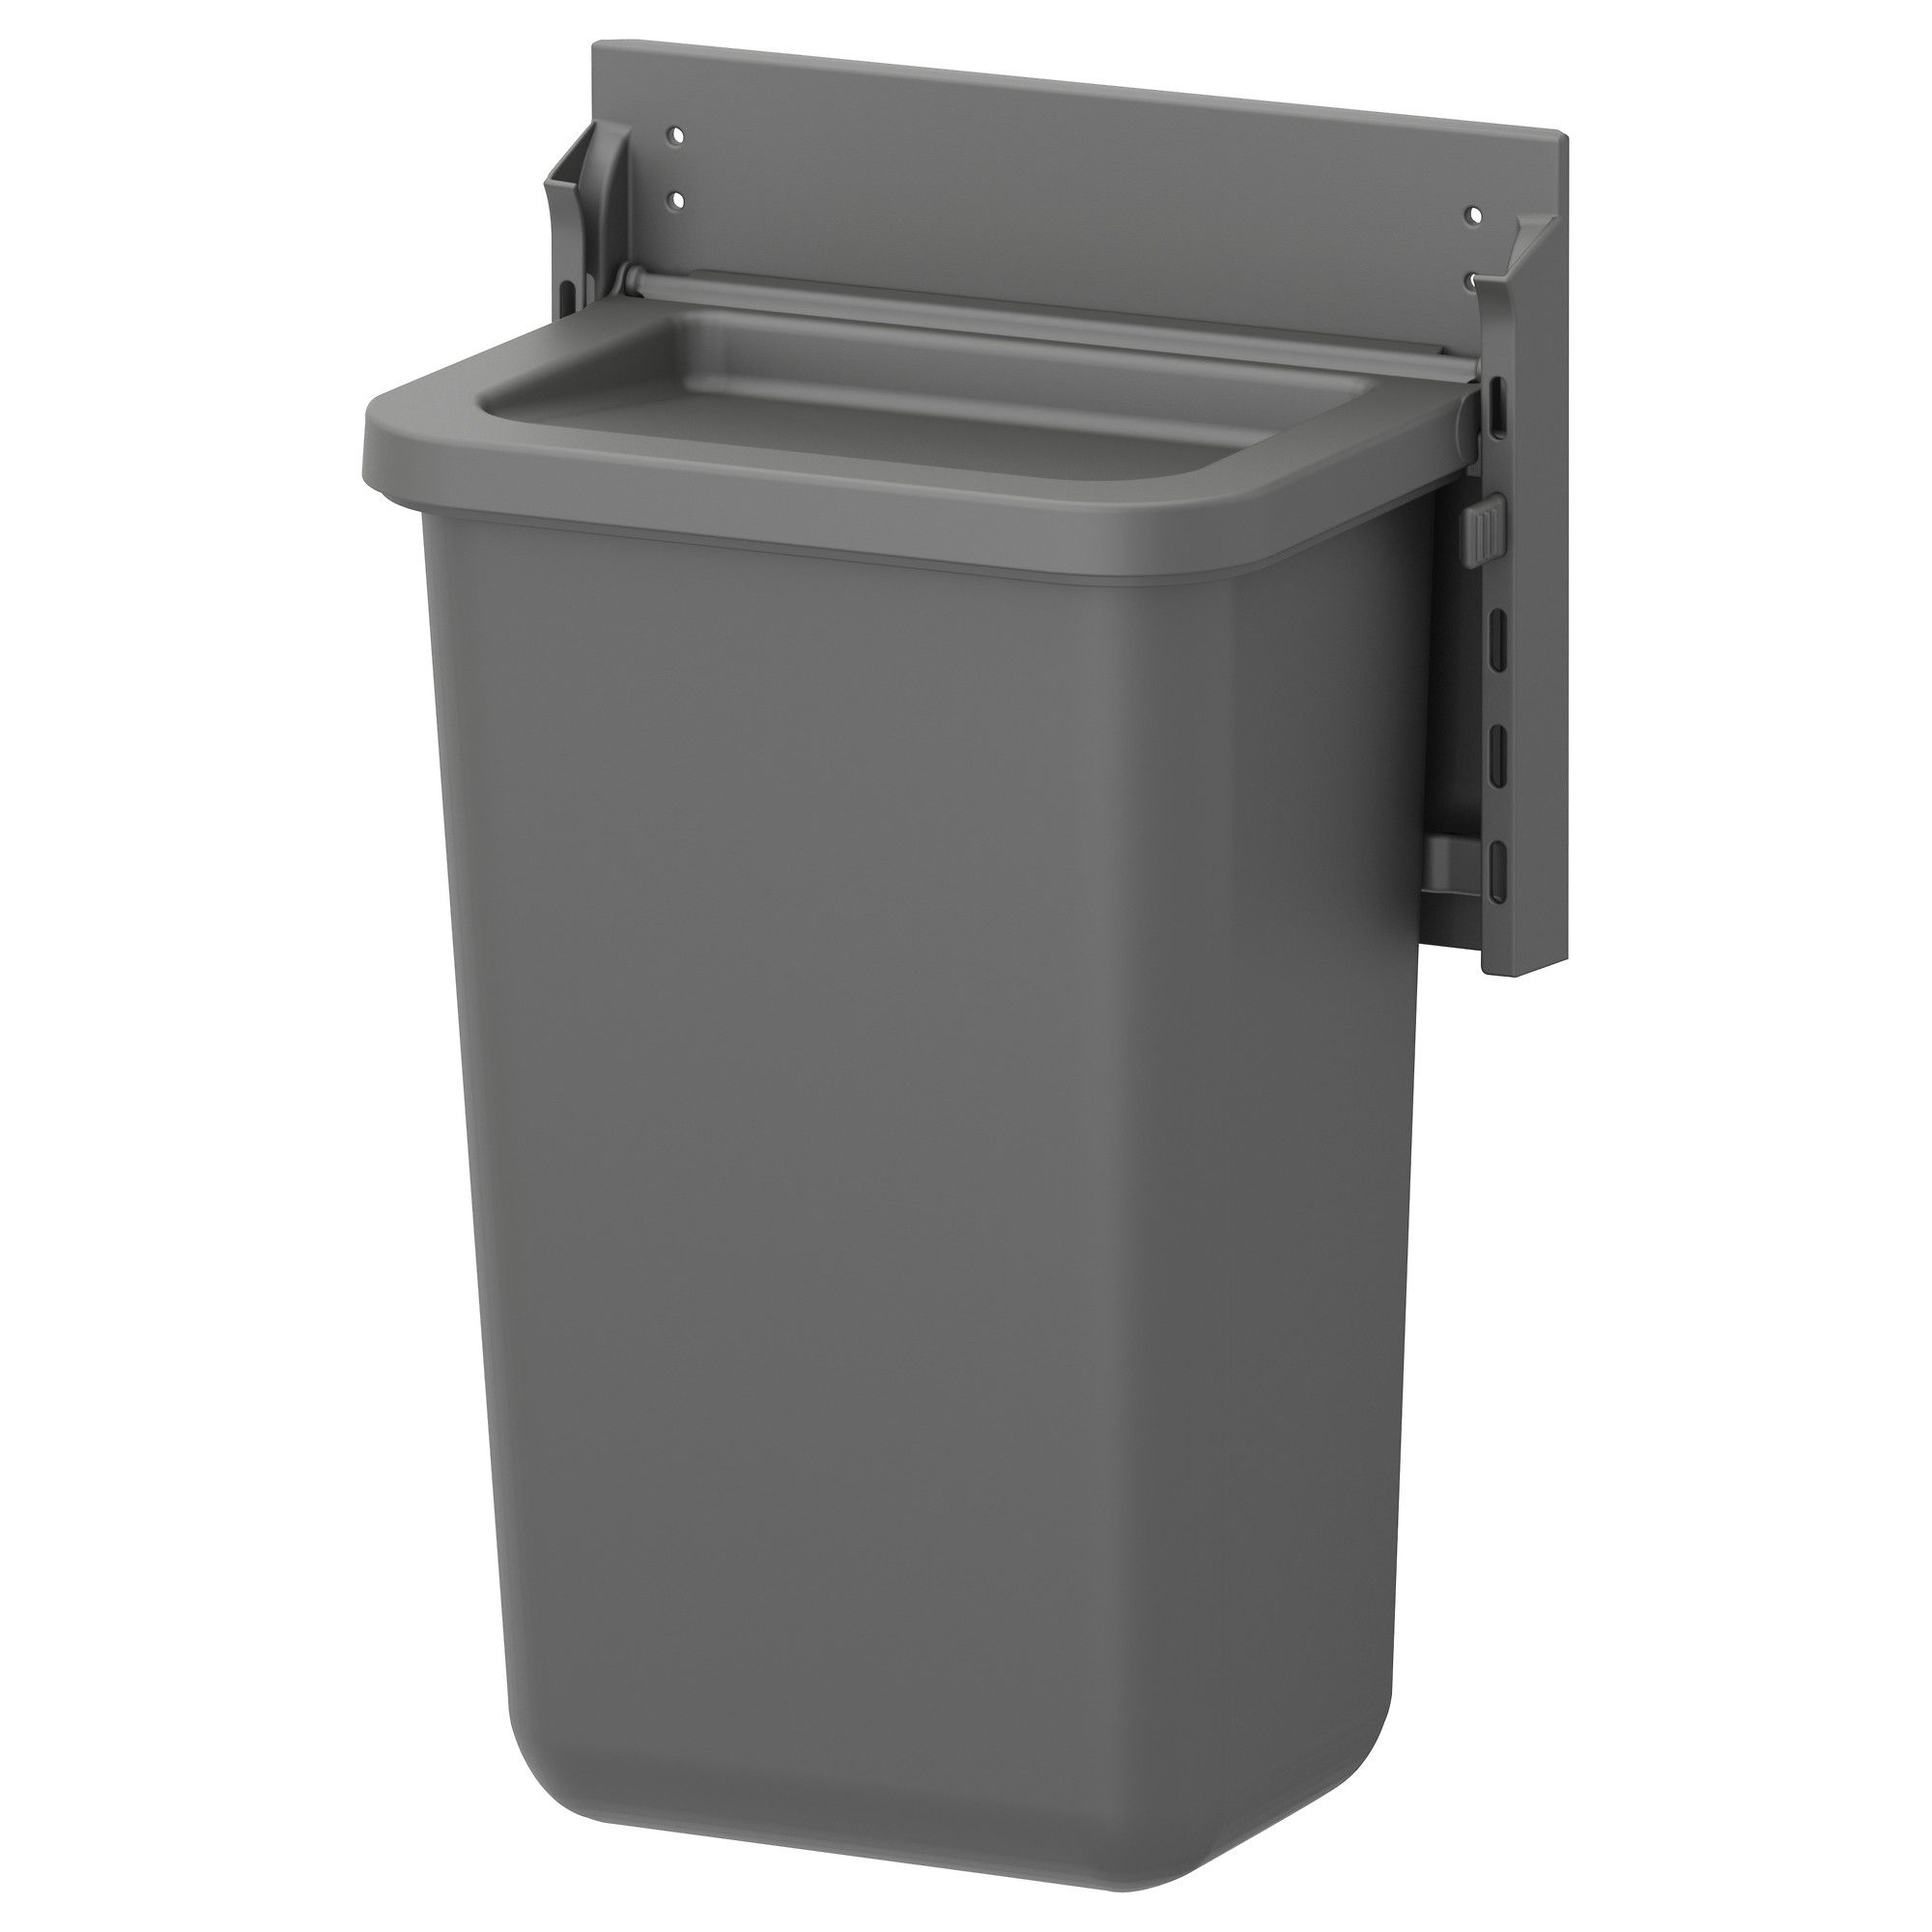 Behälter Küche Ikea Rationell Compost Bin Ikea Ideas For The House